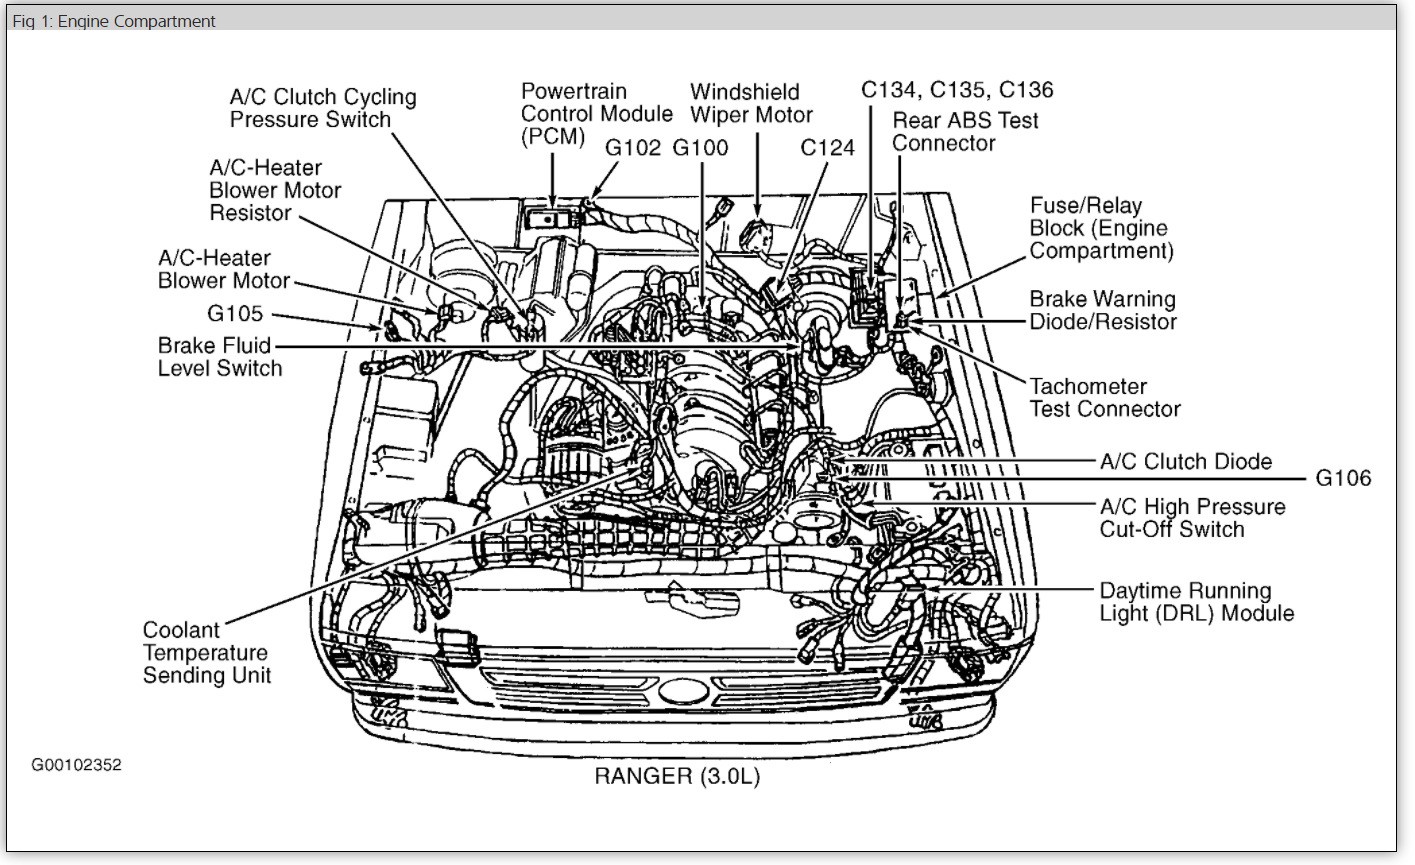 T10254886 None 4 windows as well Vw Fuse Box Diagram furthermore 2013 Vw Jetta Underhood Fuse Map together with 1998 Vw Jetta Fuse Box Location furthermore 2001 Vw Jetta Battery Fuse Diagram Html. on 2013 vw jetta fuse card